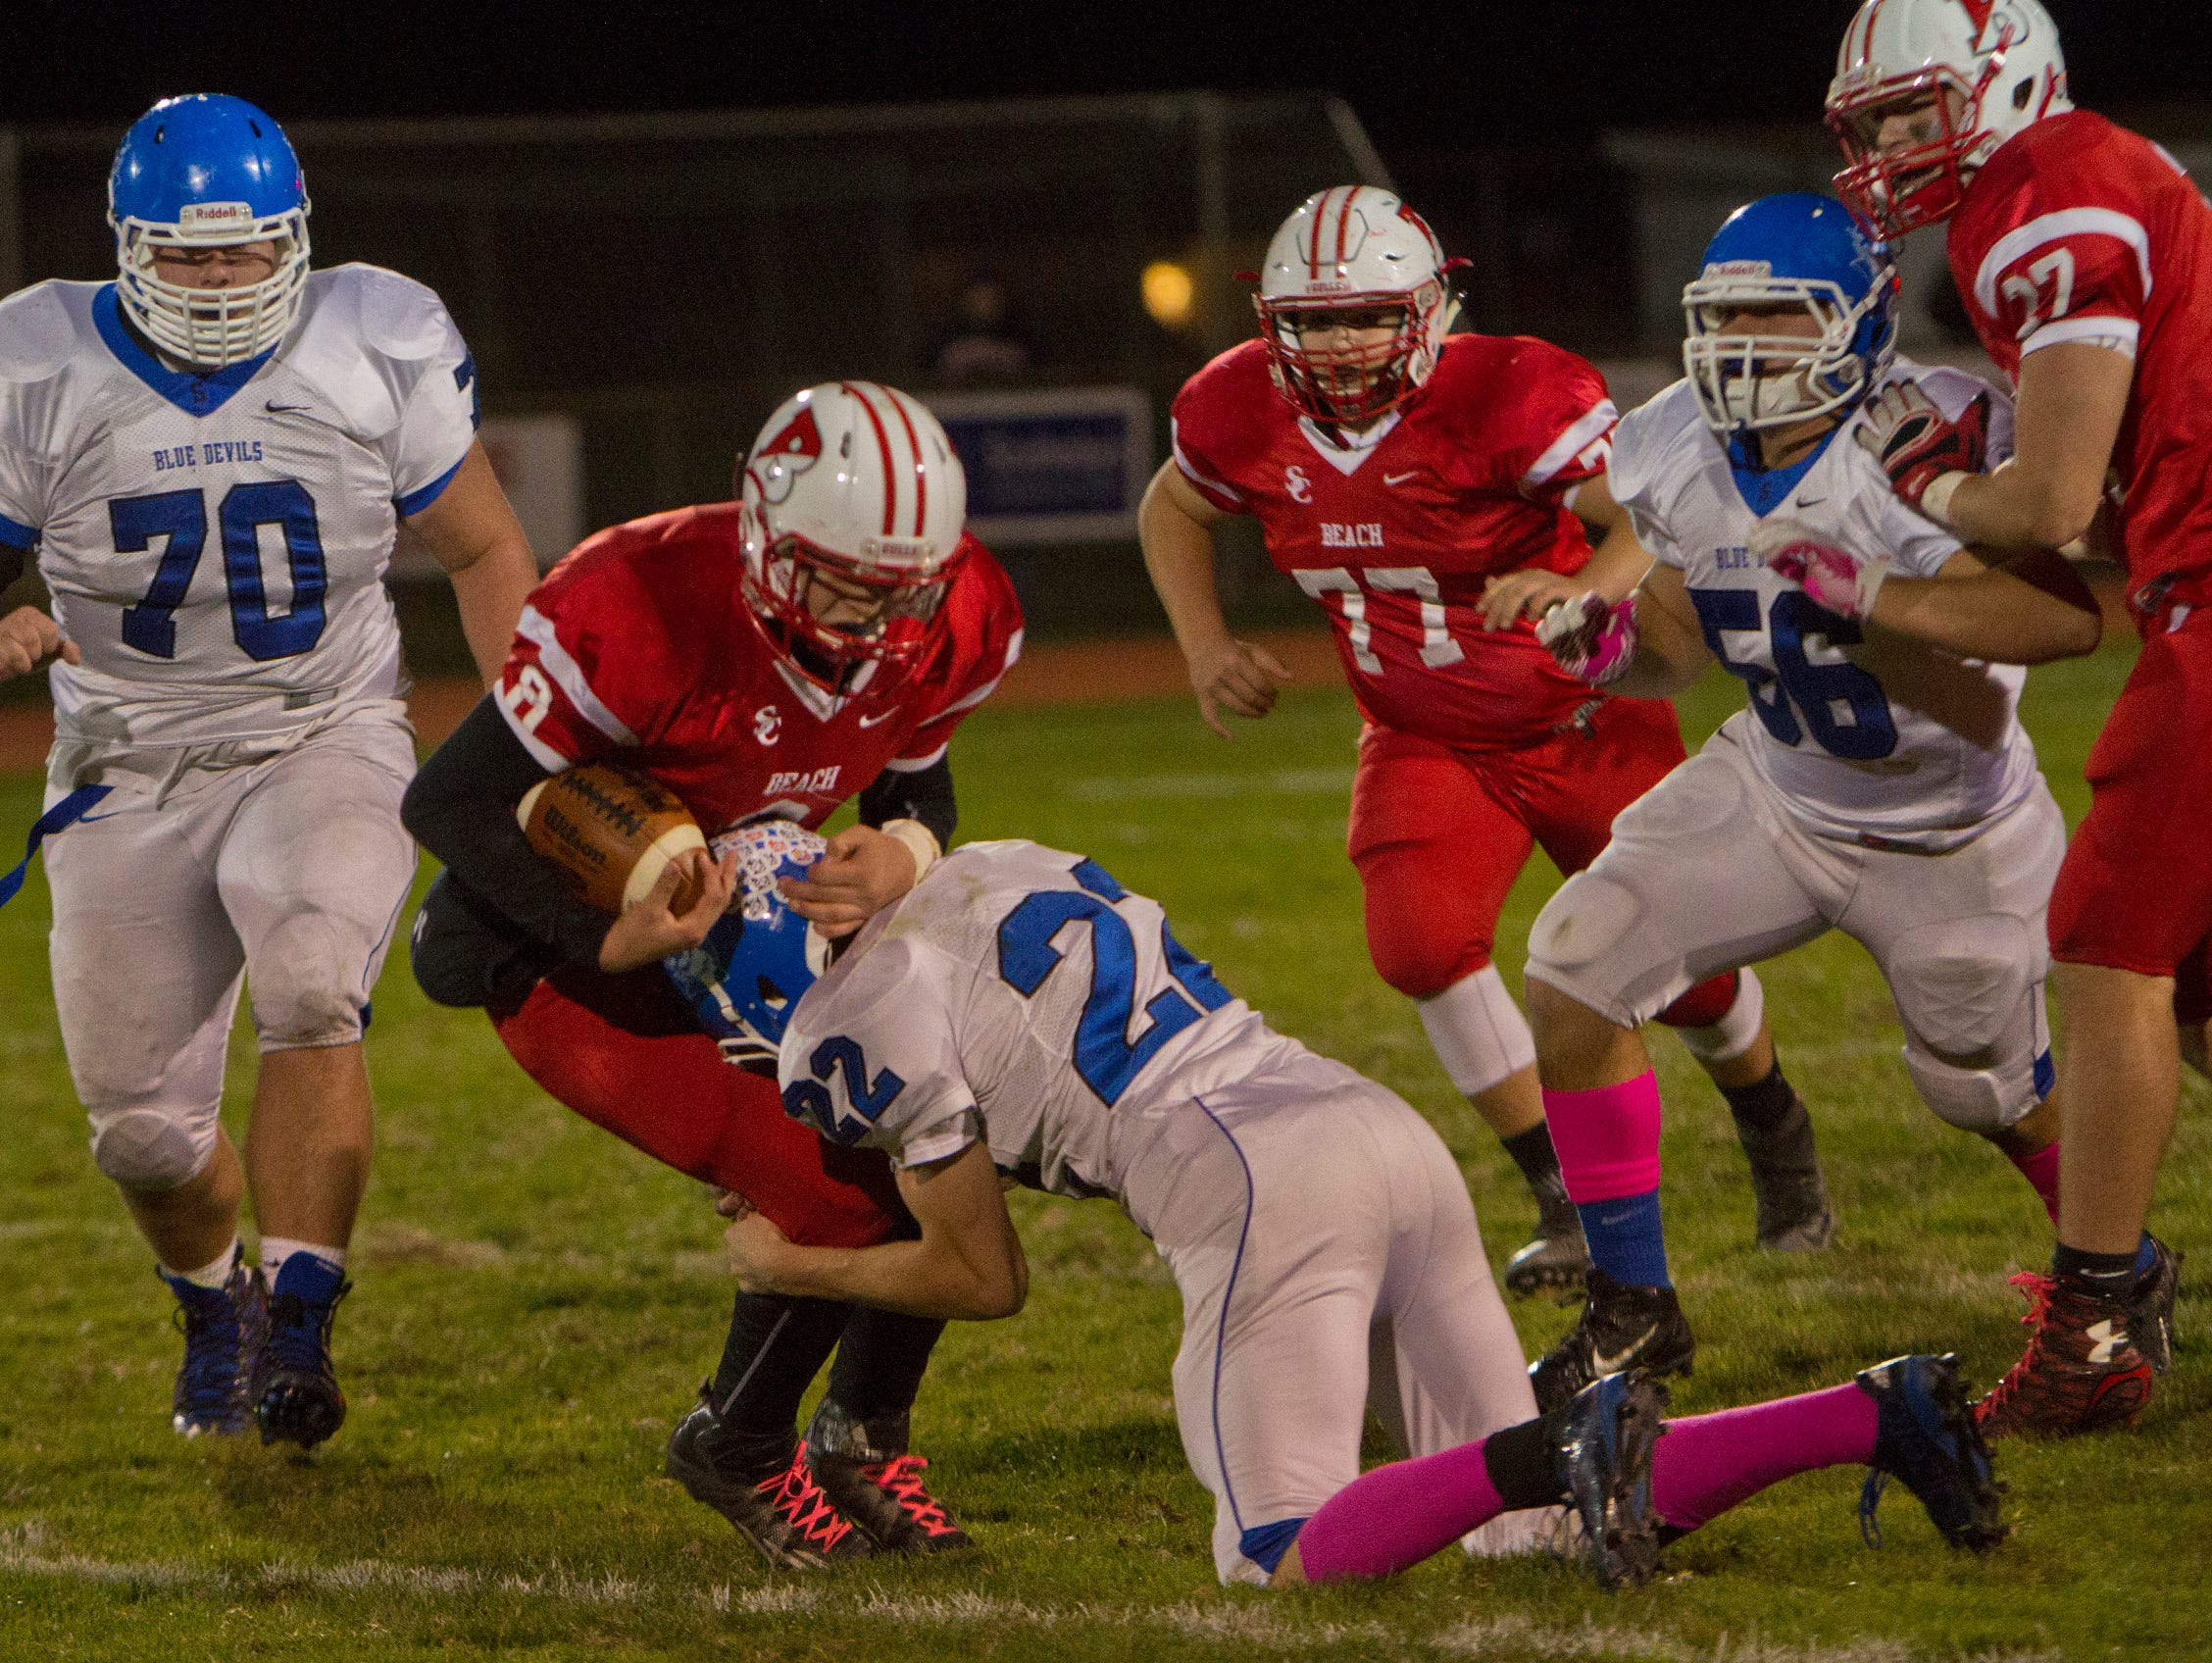 Point Beach's John Nista gets tackled by Shore Regional's Alex Johnson during first half action. Shore Regional football vs Point Pleasant Beach in Point Pleasant Beach on October 30, 2015.